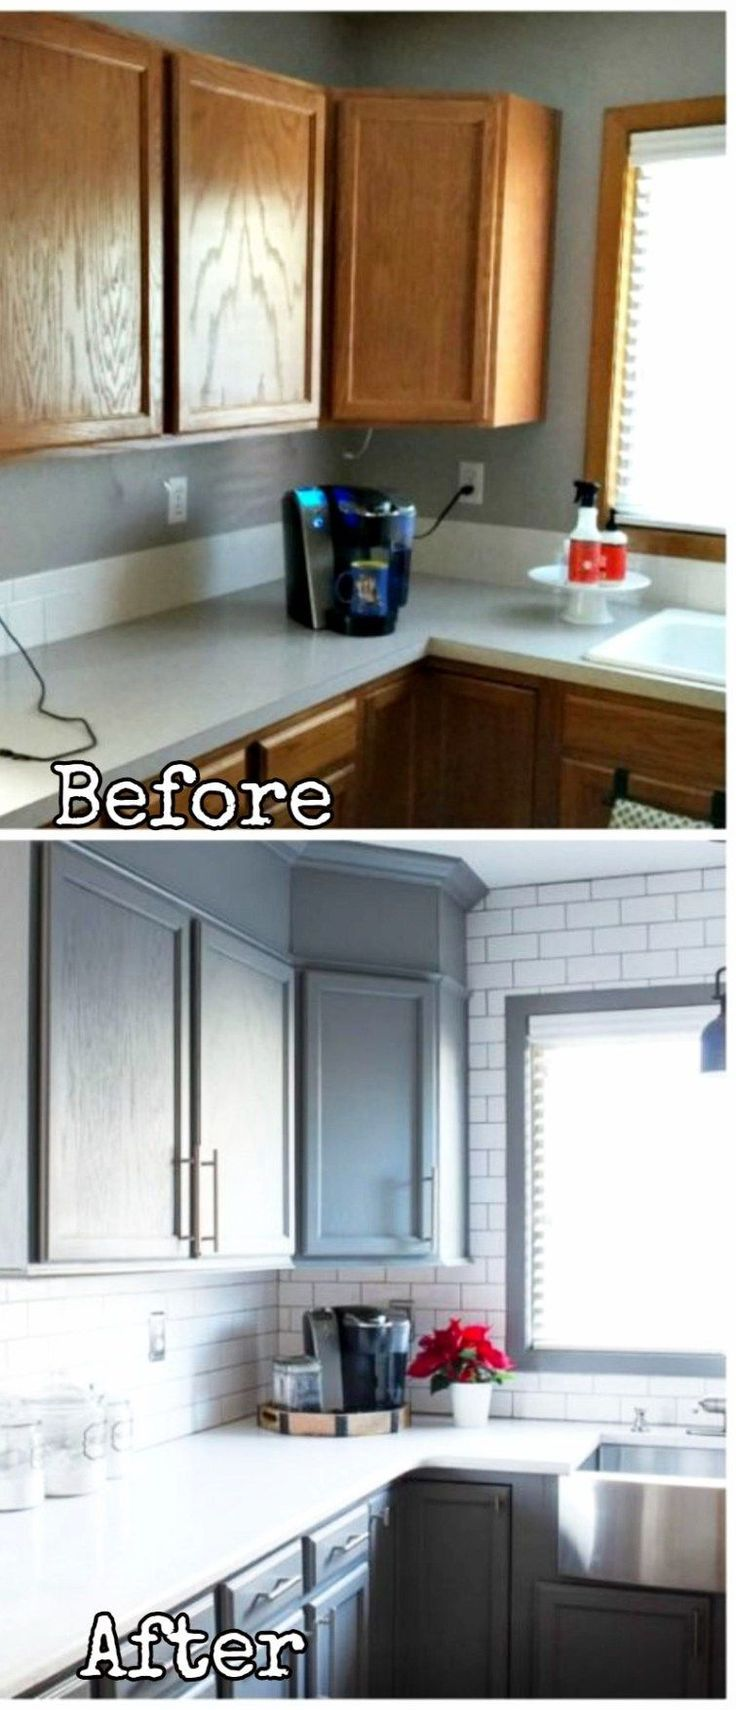 Before And After Small Kitchen: Small Kitchen Remodels Before And After PICTURES To Drool